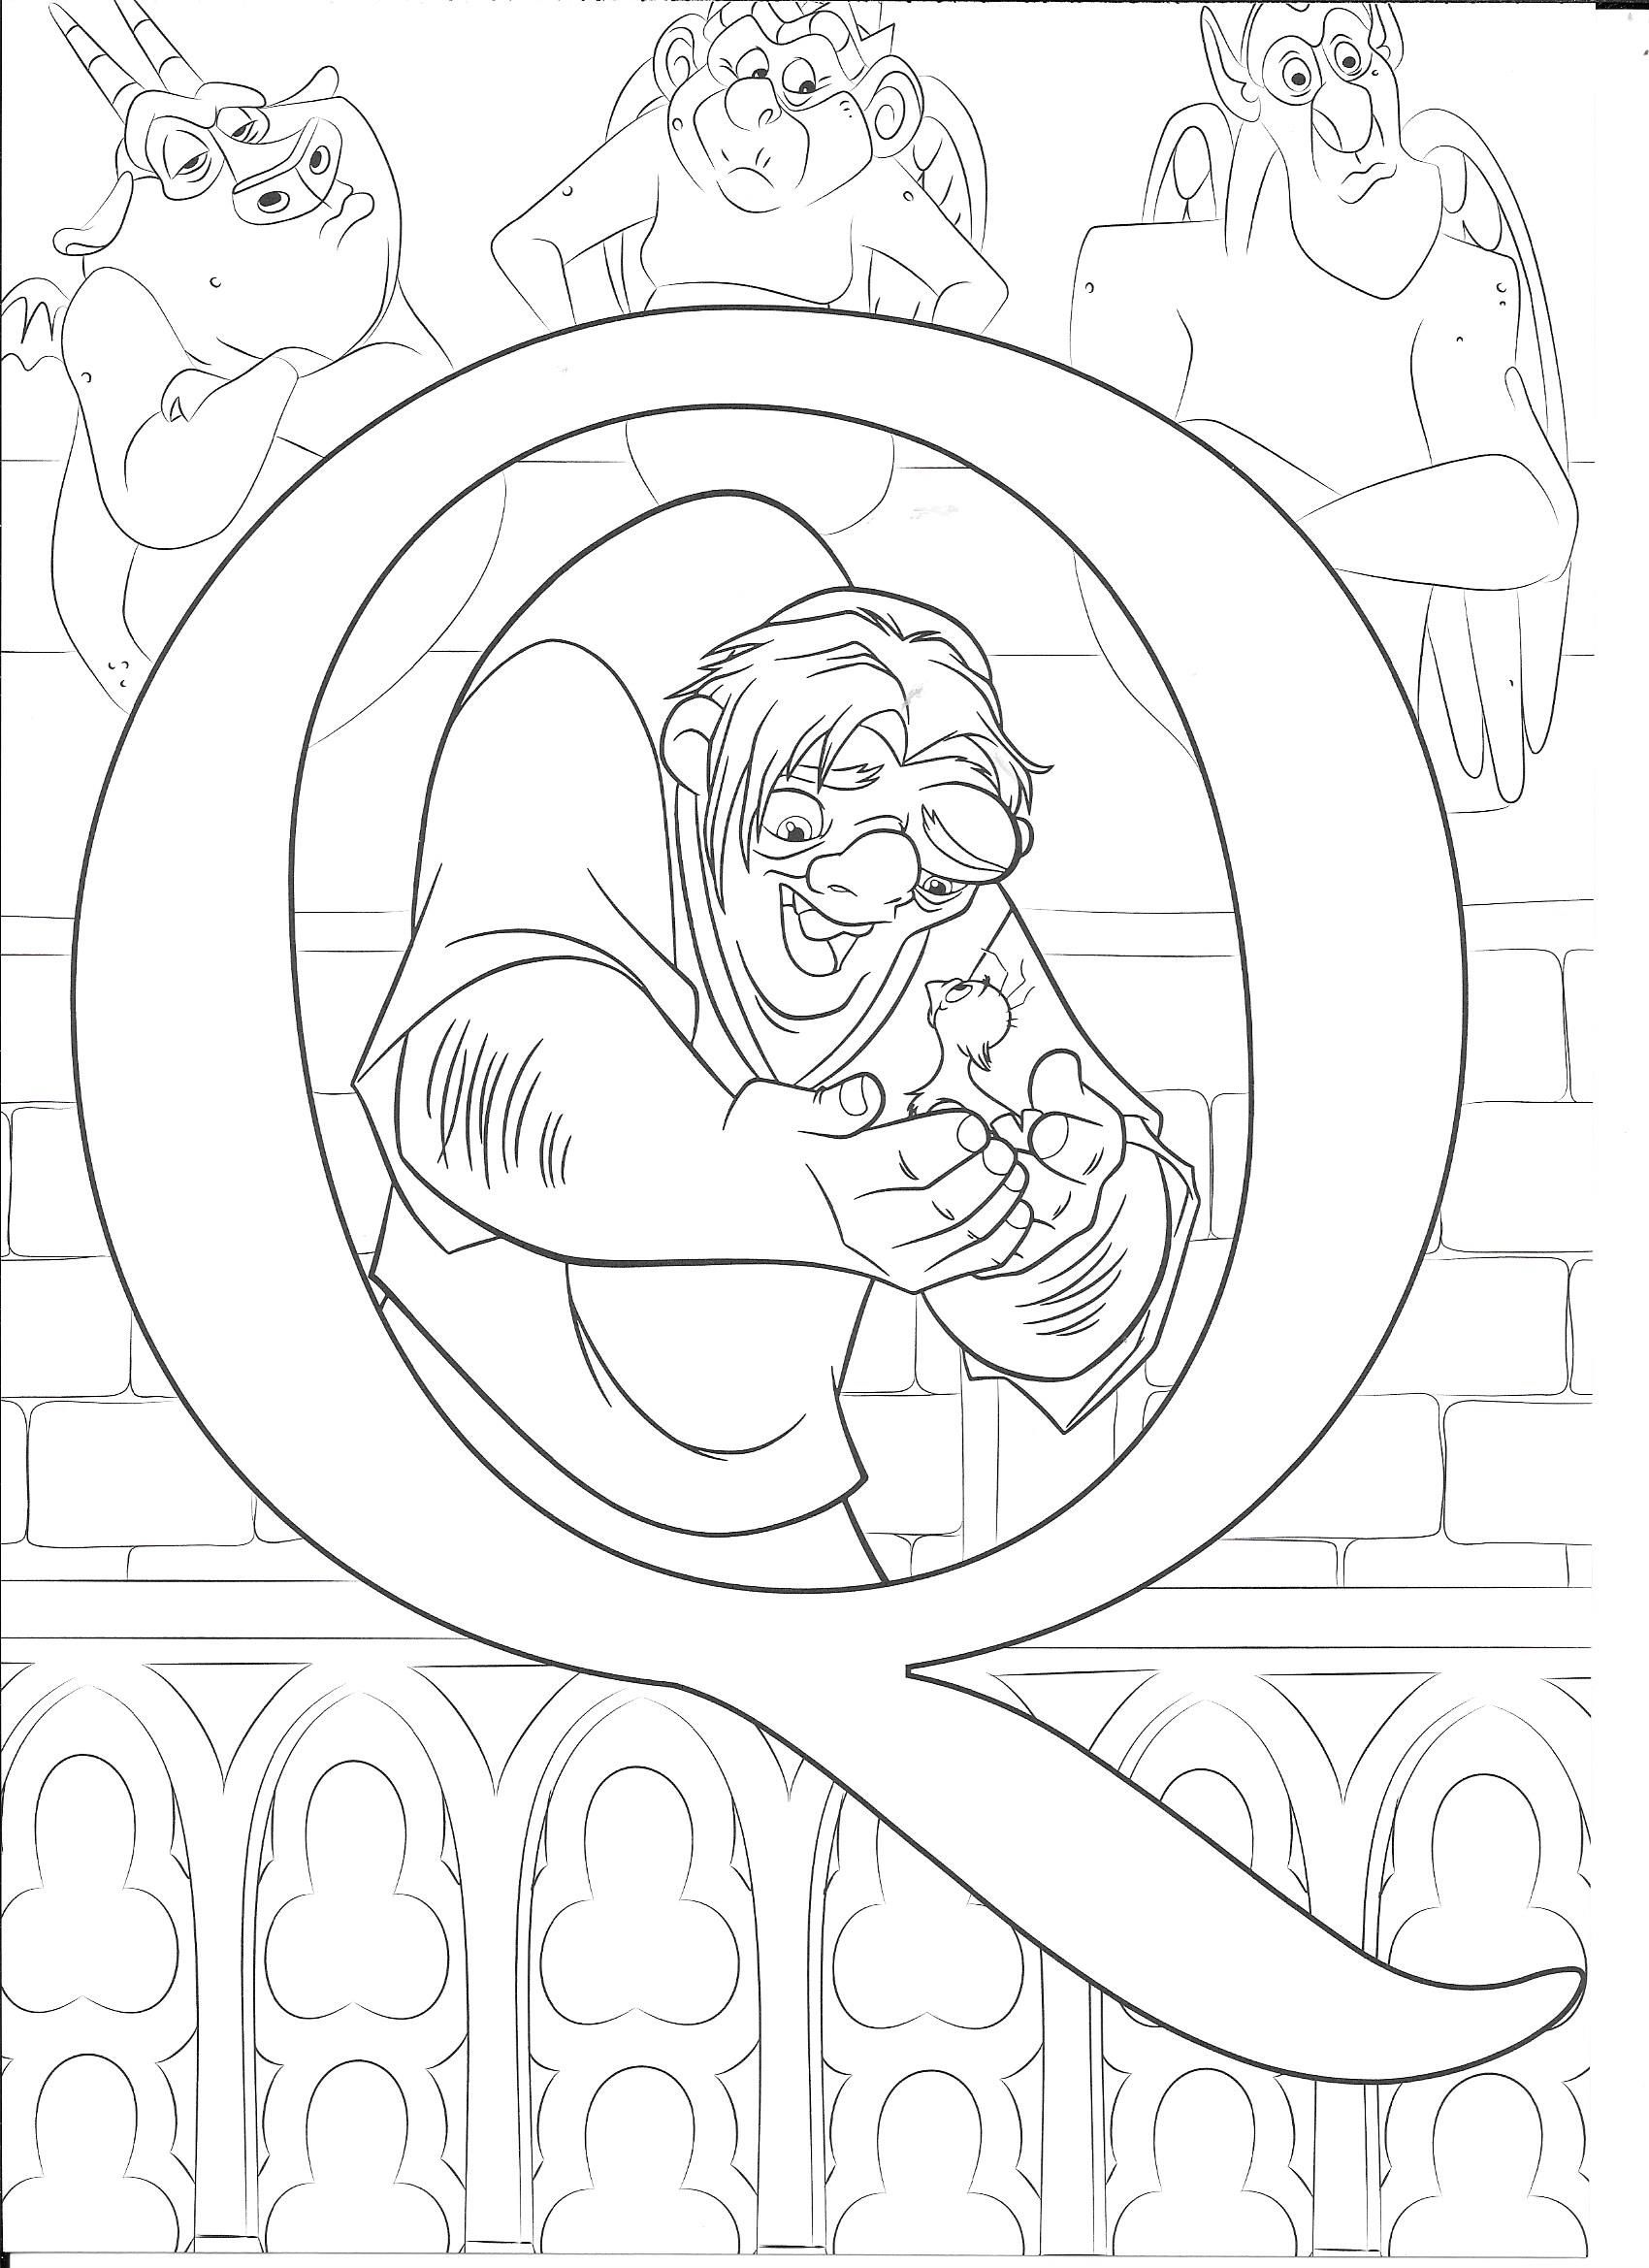 Alphabet Coloring Disney Abc Coloring Pages Disney Coloring Pages Abc Coloring